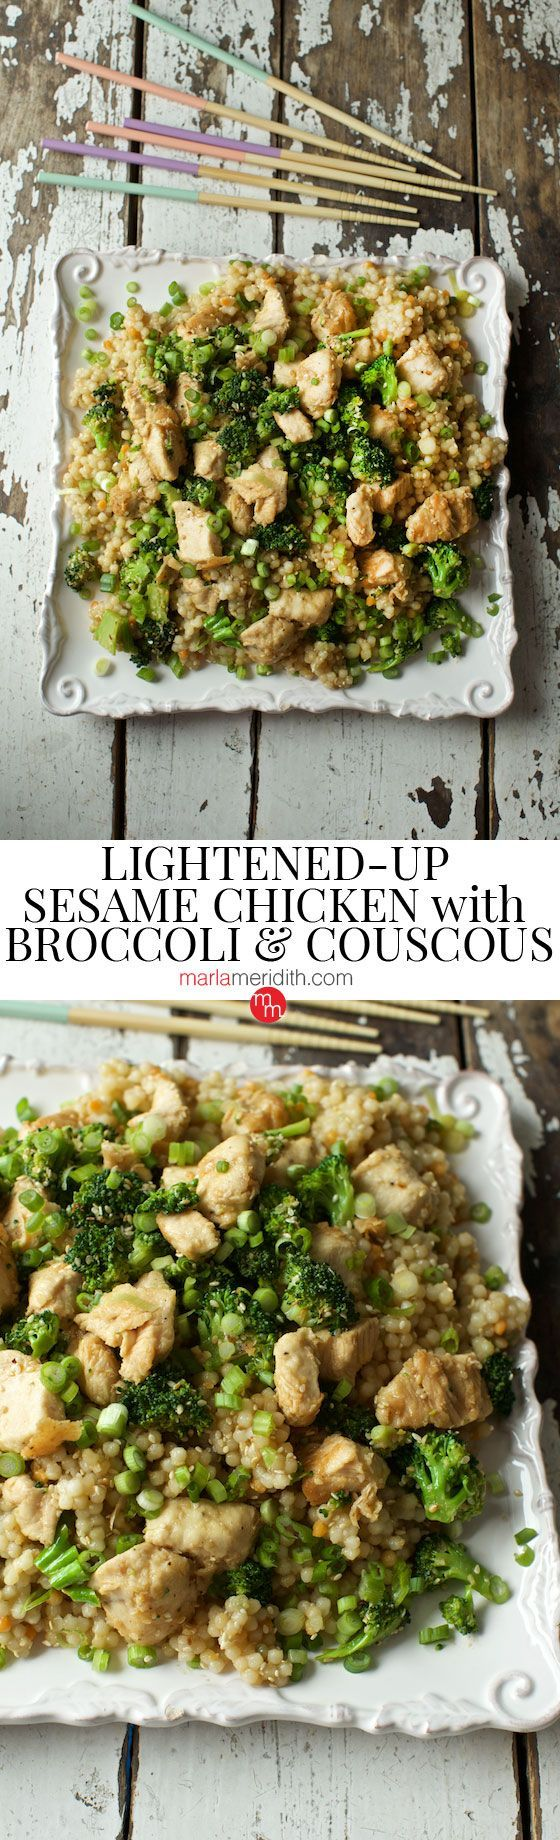 Lightened-Up Sesame Chicken with Broccoli & Couscous recipe. A GREAT weeknight meal for the family! http://MarlaMeriditih.com ( /marlameridith/ )